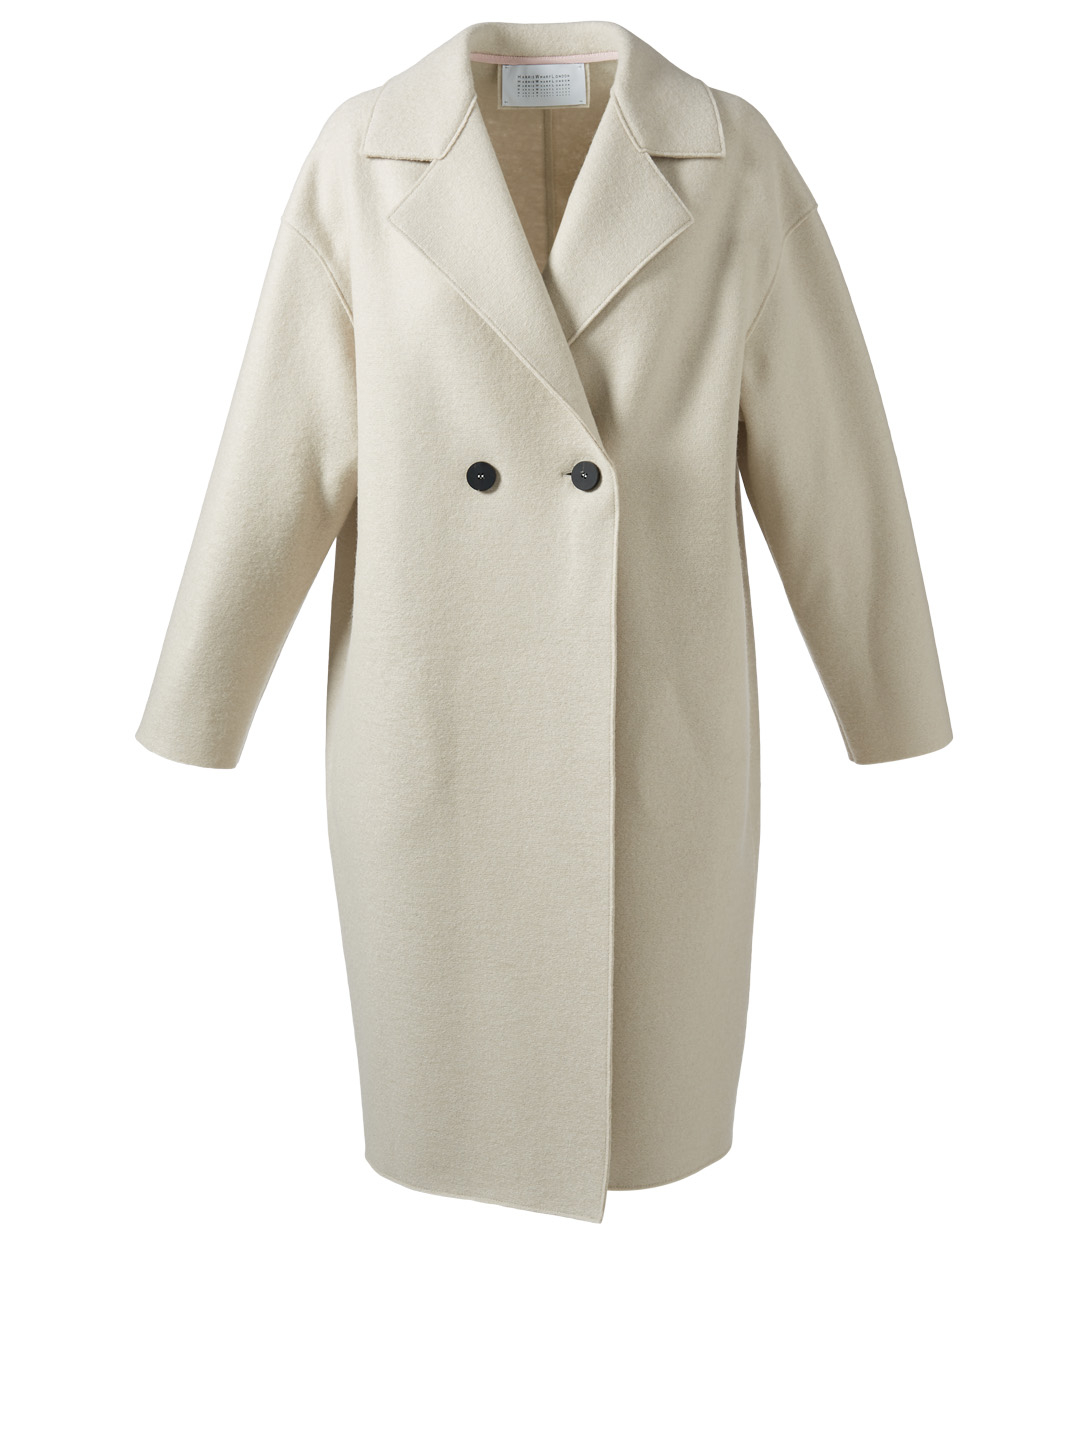 HARRIS WHARF LONDON Pressed Wool Double-Breasted Coat Women's White